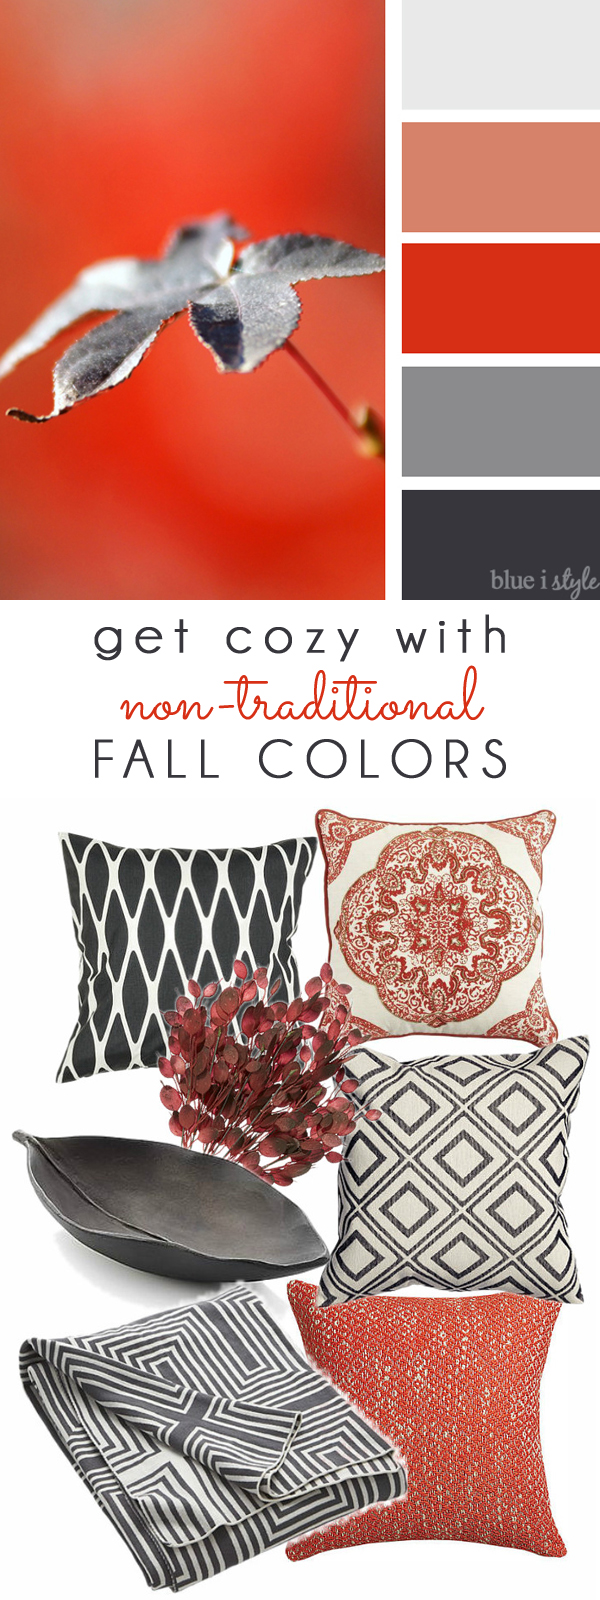 Red & Gray Fall Color Mood Board